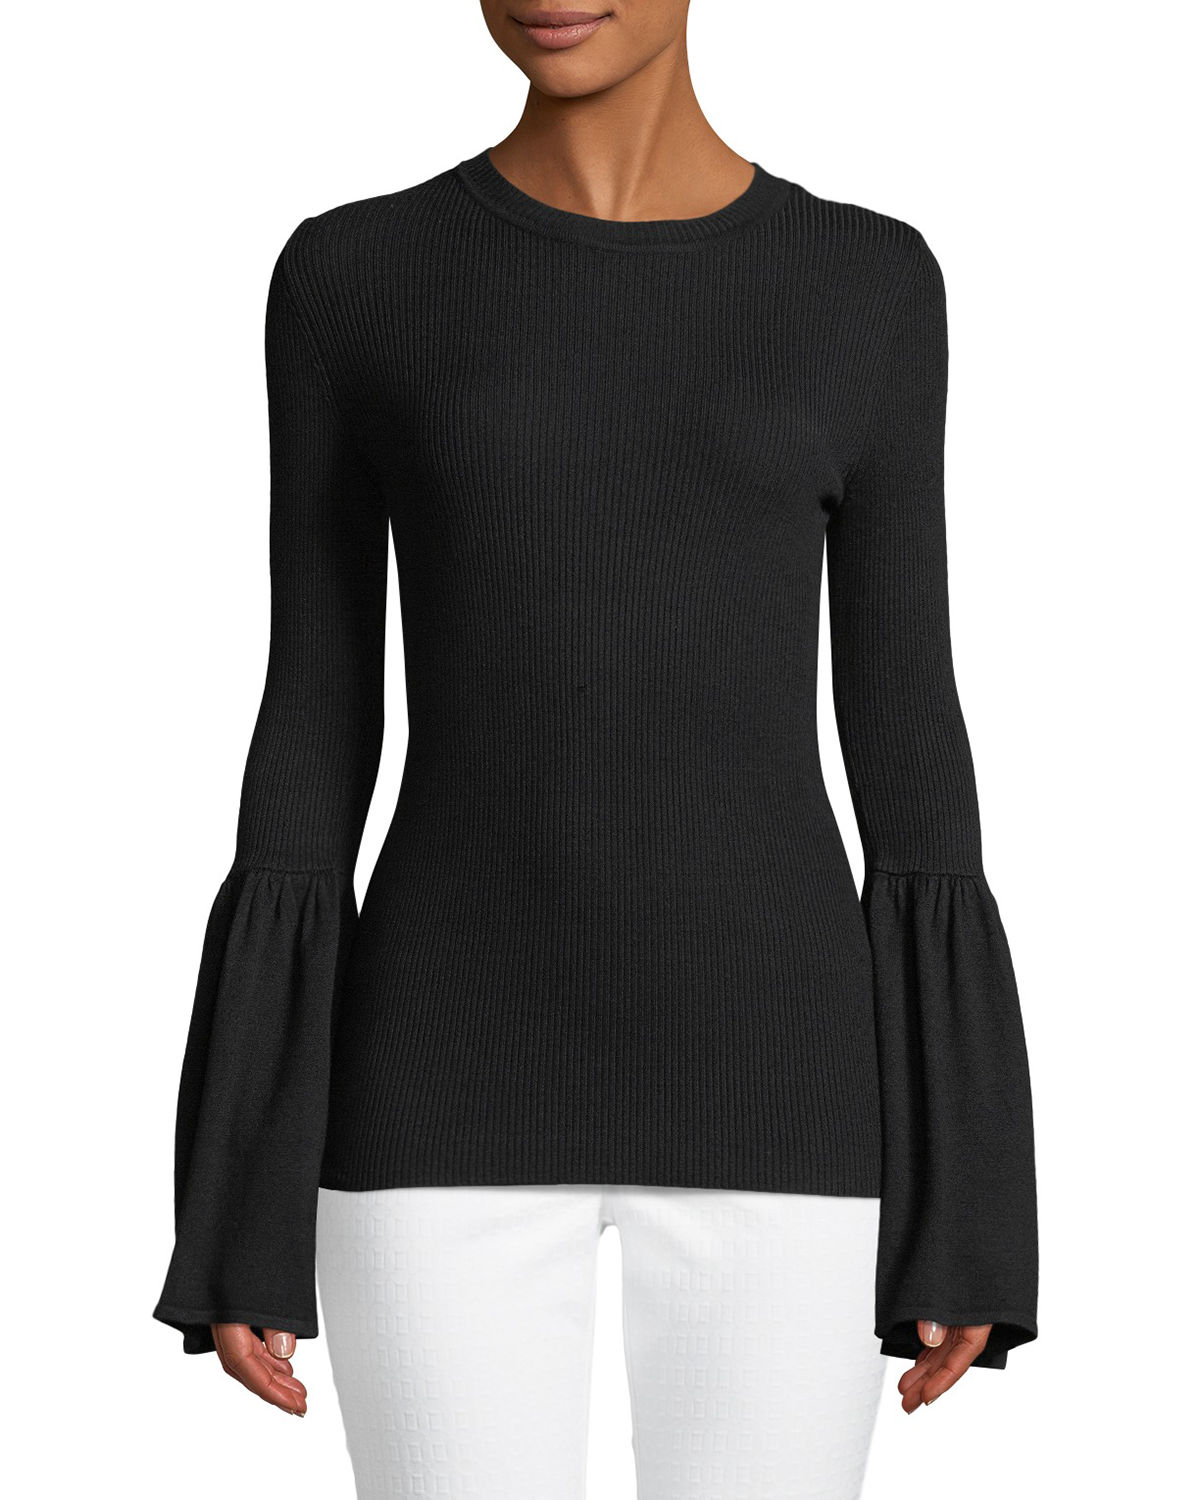 Ribbed Flare-Sleeve Pullover Sweater